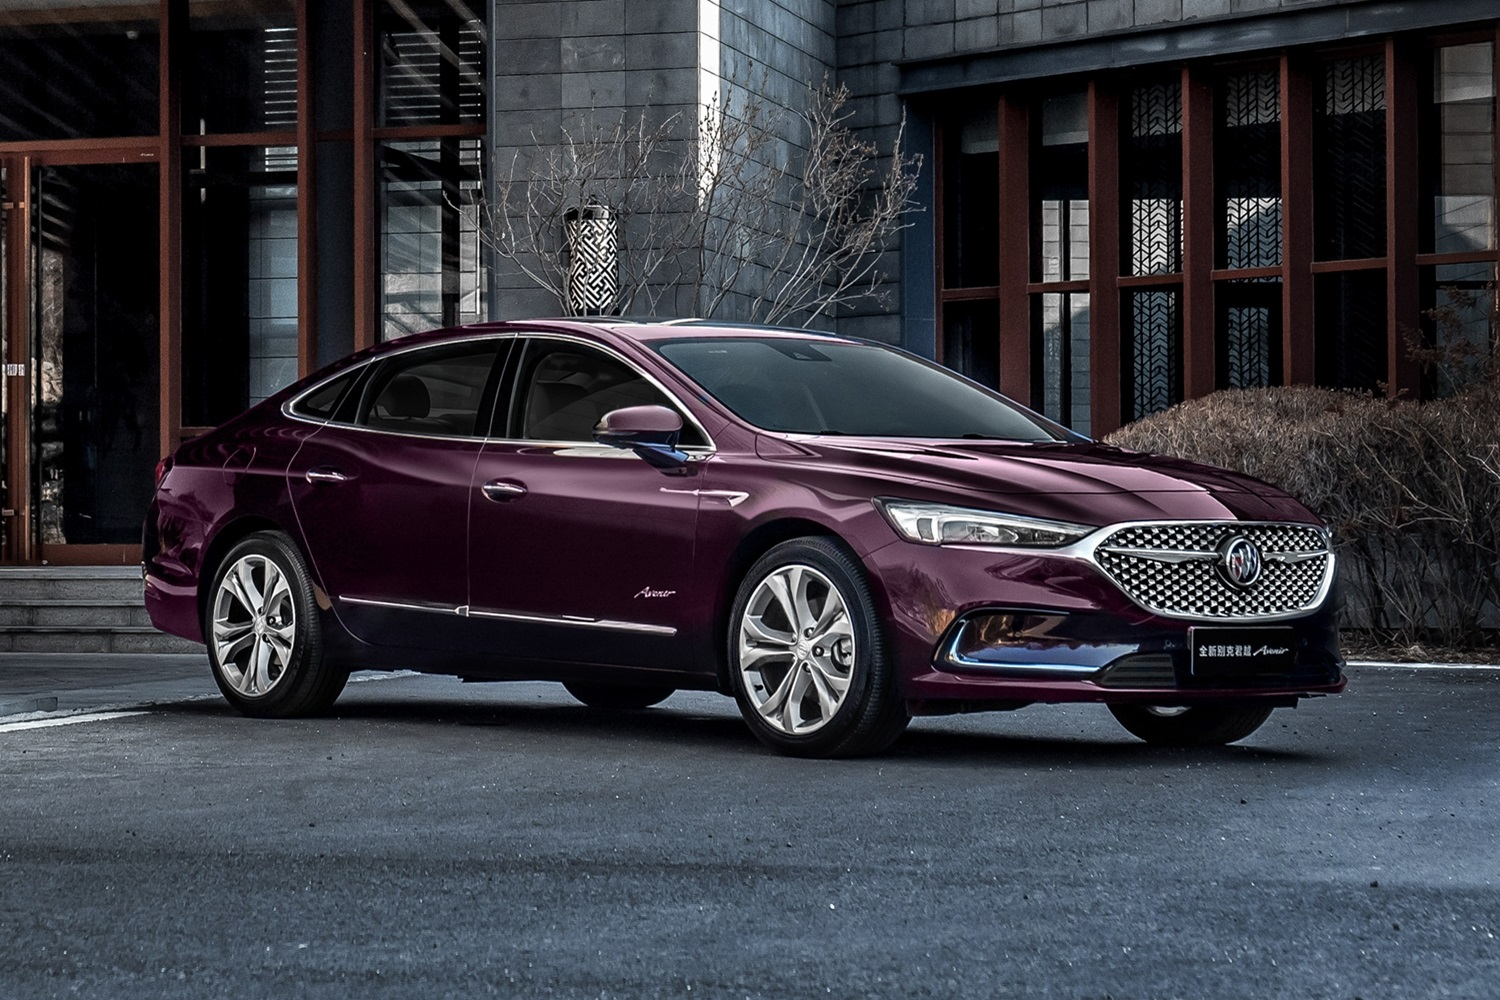 2021 Buick Lacrosse Gets More Refined Than Ever | Gm Authority New 2021 Buick Lacrosse Pictures, Trims, Used